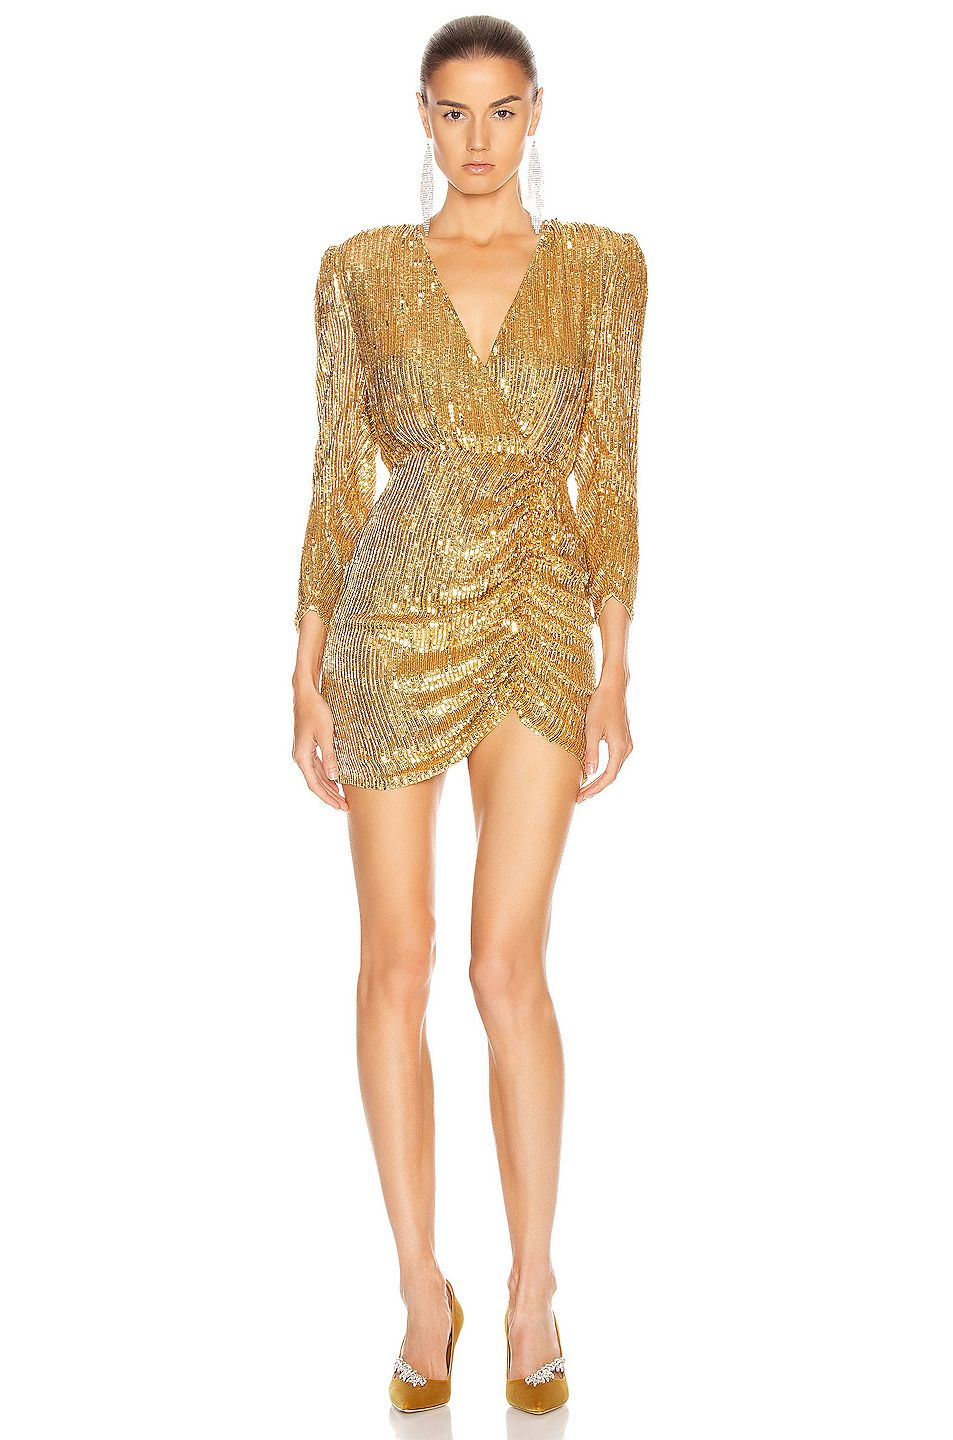 retrofete for FWRD Stacey Dress in Gold Glam dresses